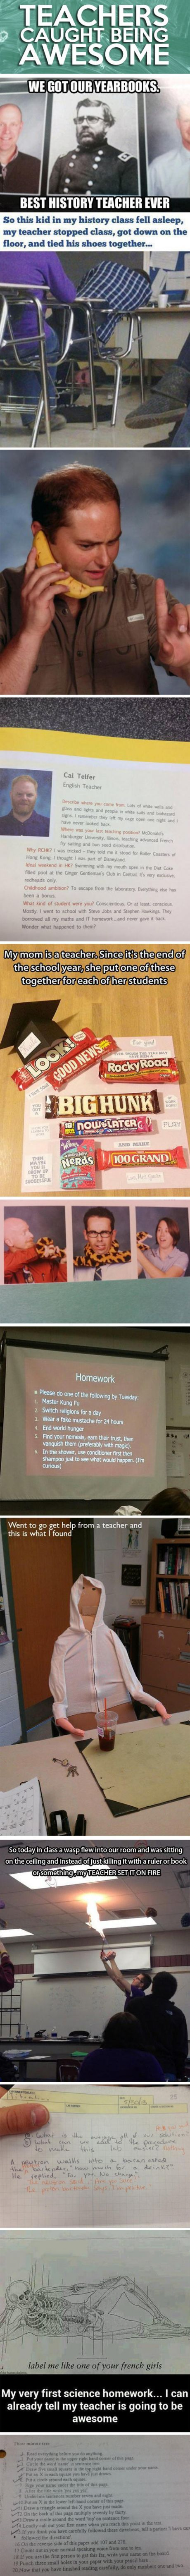 Teachers caught being awesome